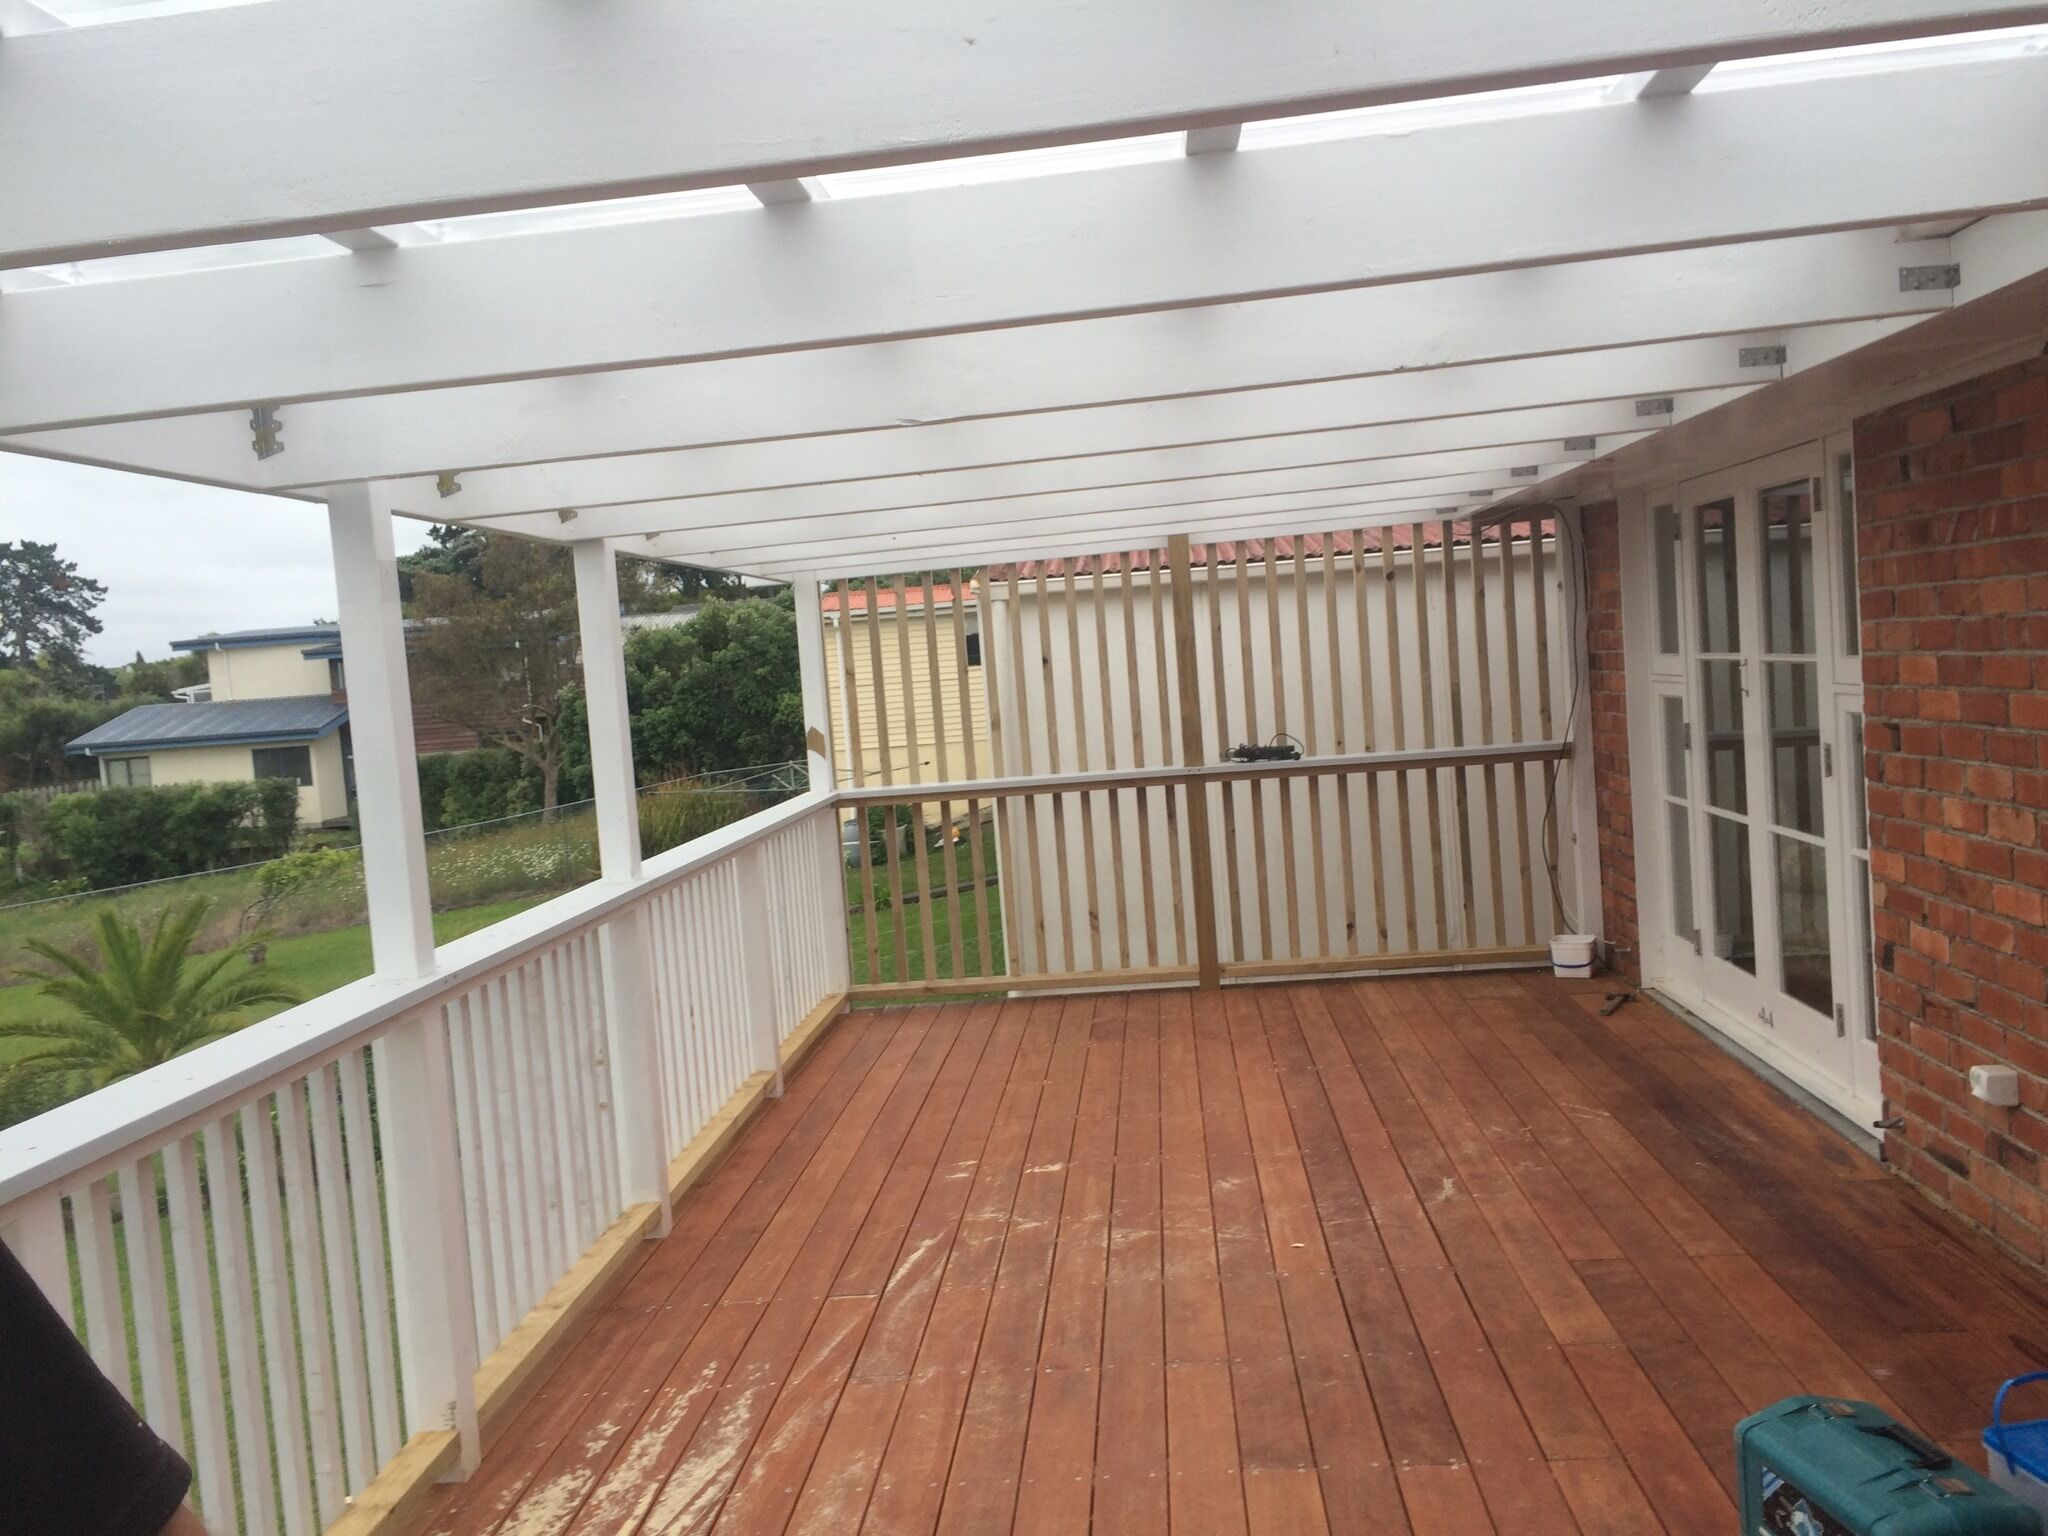 Replaced main deck